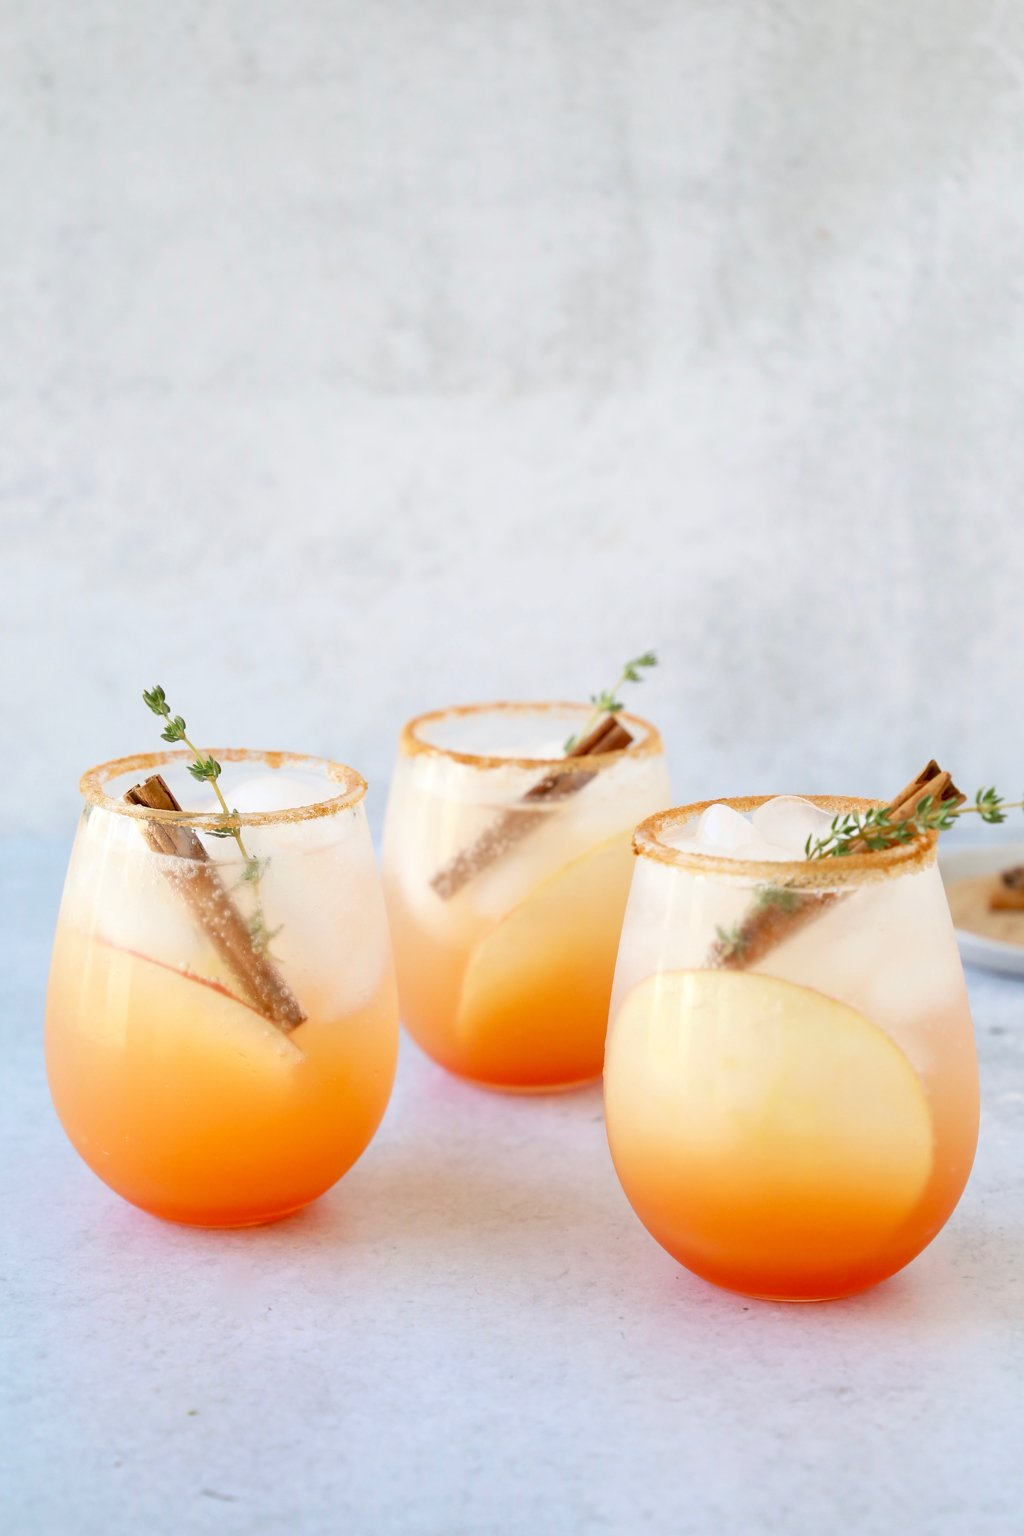 three glasses of a red orange colored cocktail with a cinnamon stick and thyme leave in each glass